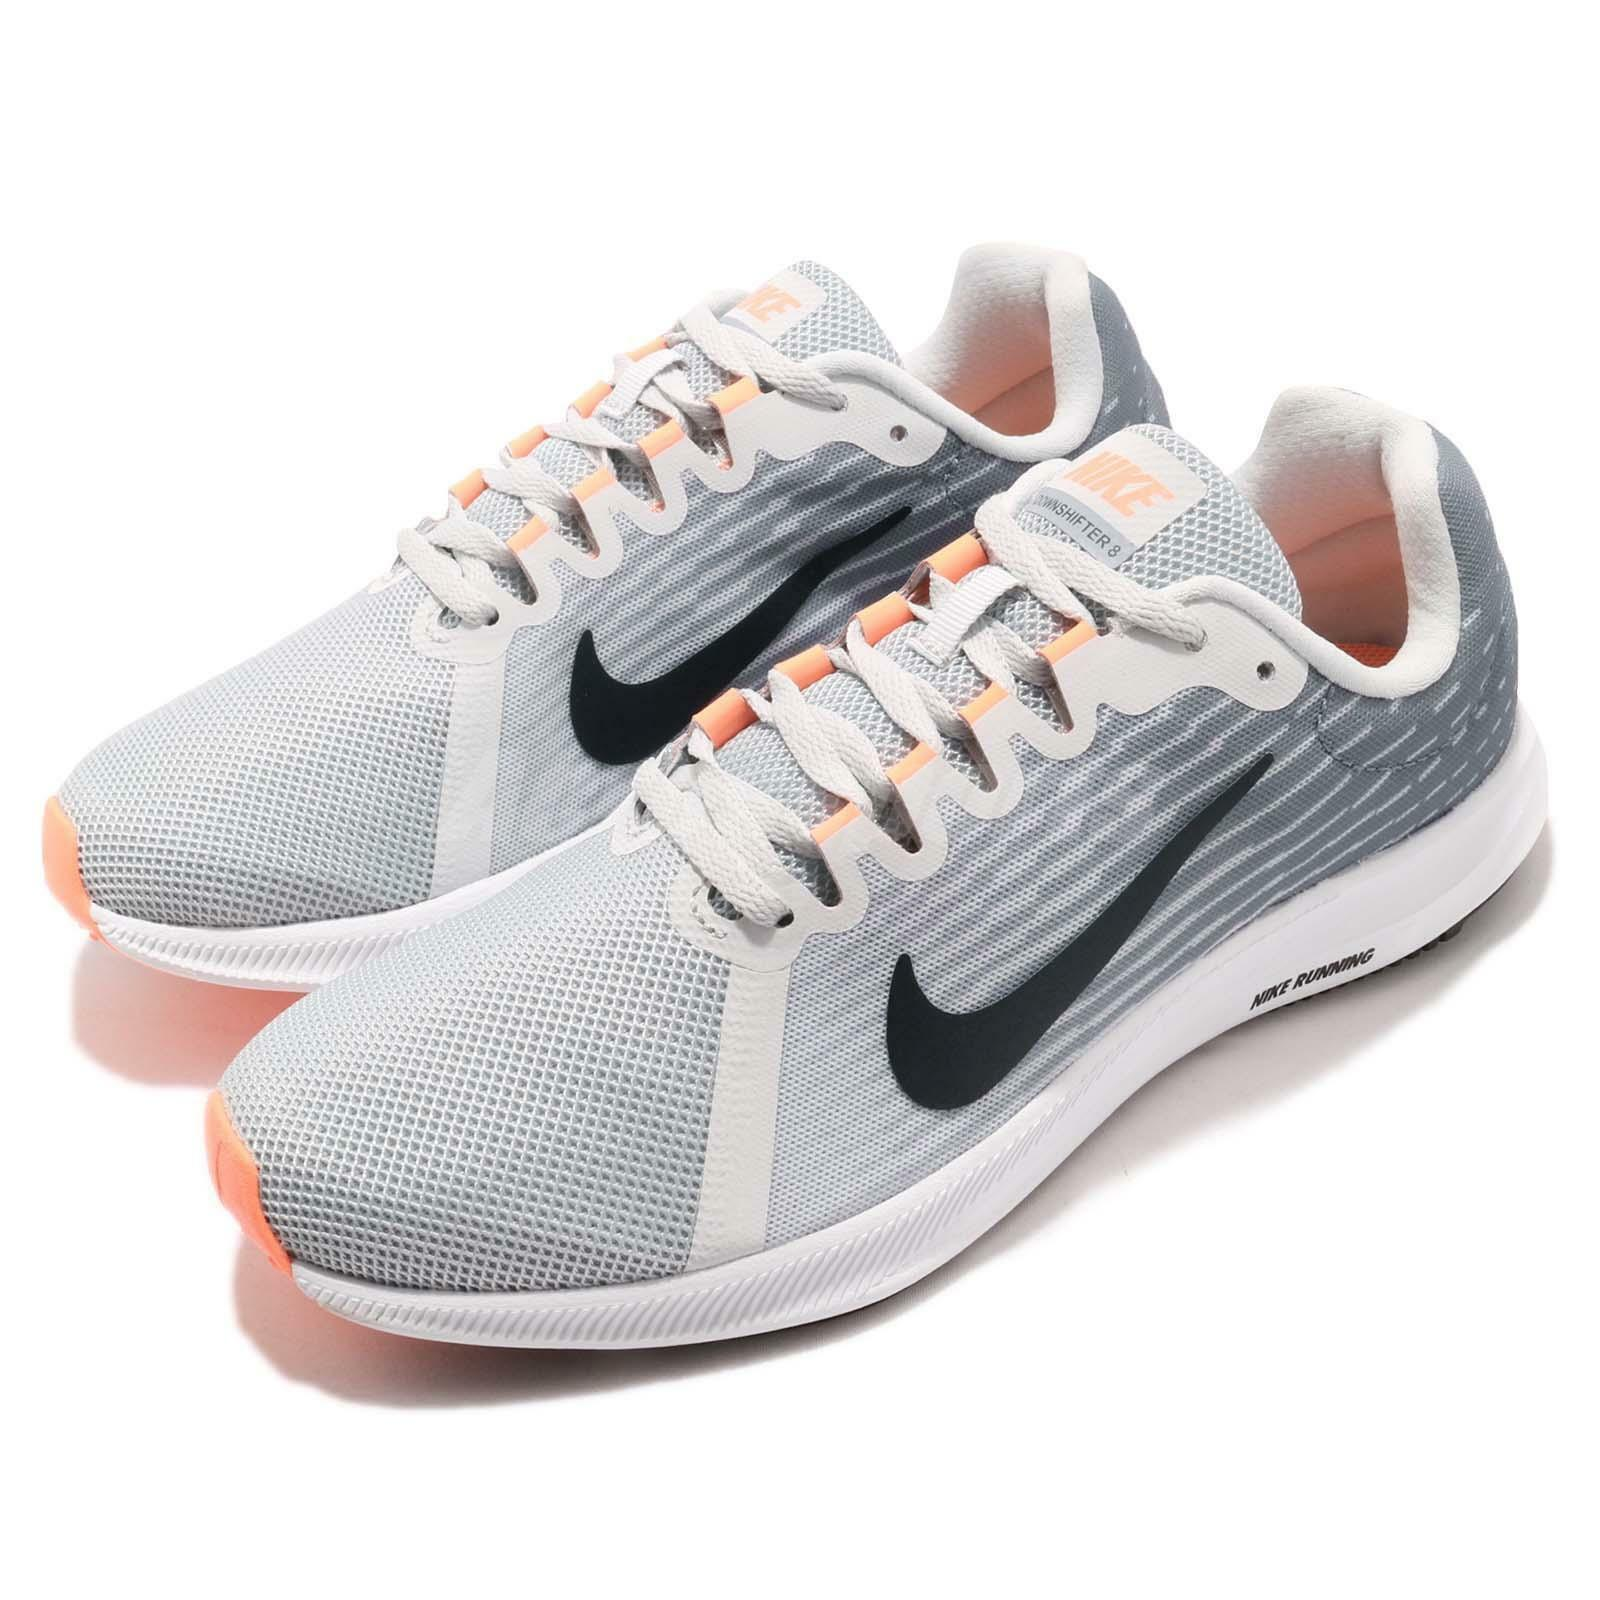 Nike Nike Nike Wmns Downshifter 8 VIII Grey Black White Women Running shoes 908994-009 942fae